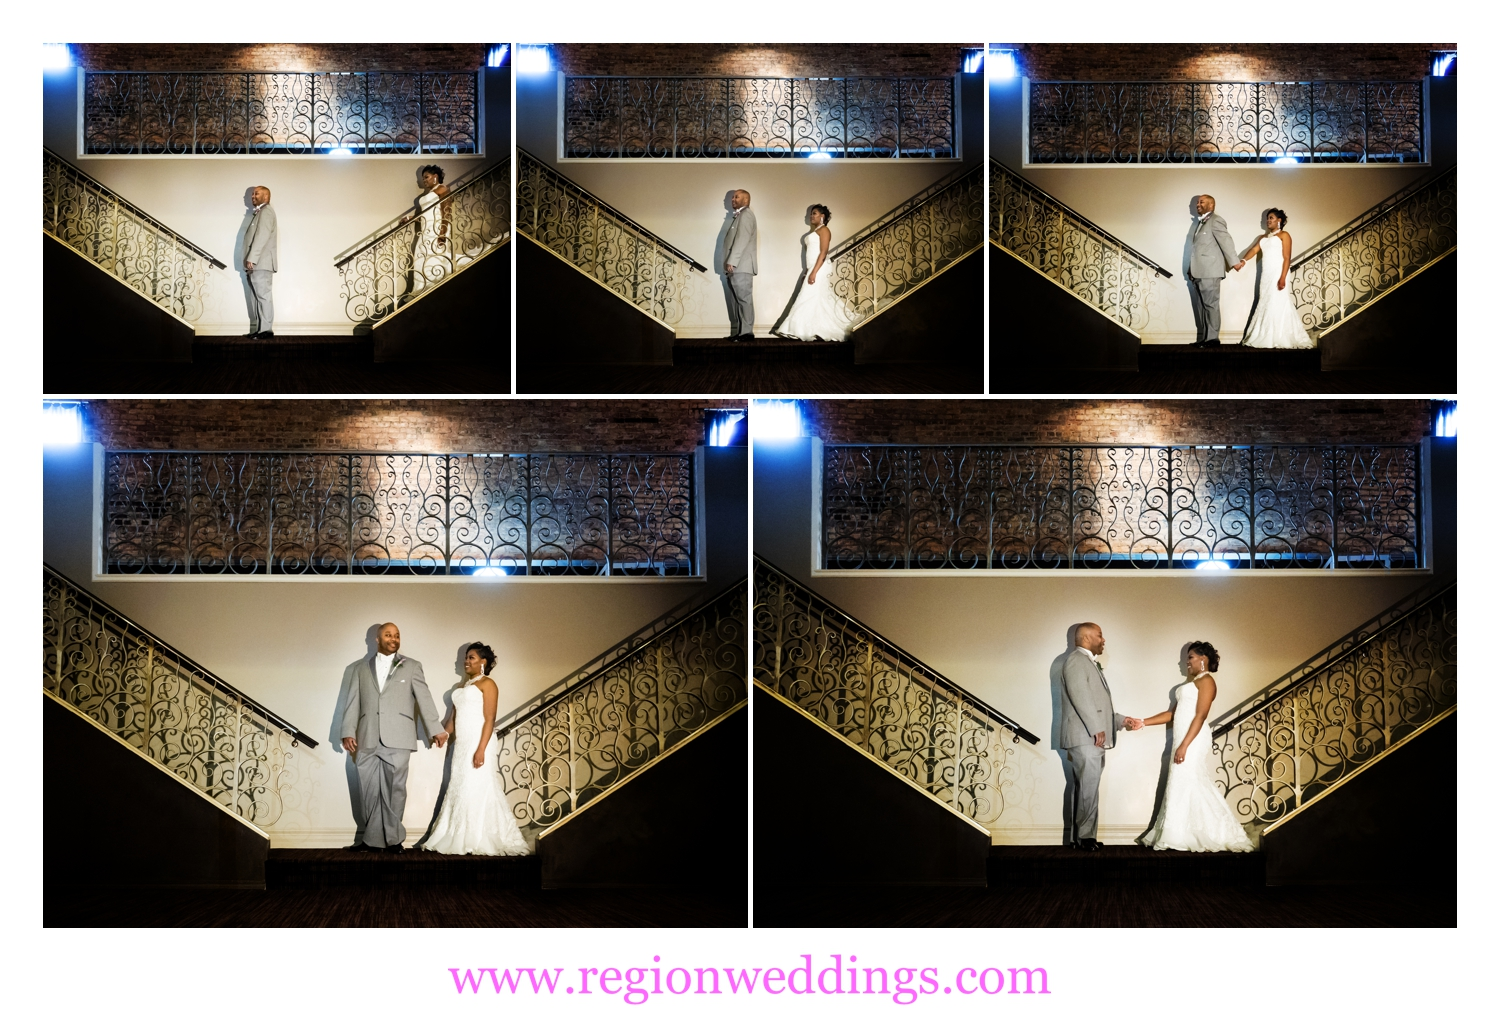 The bride and groom have their first look at bottom of The Allure staircase.